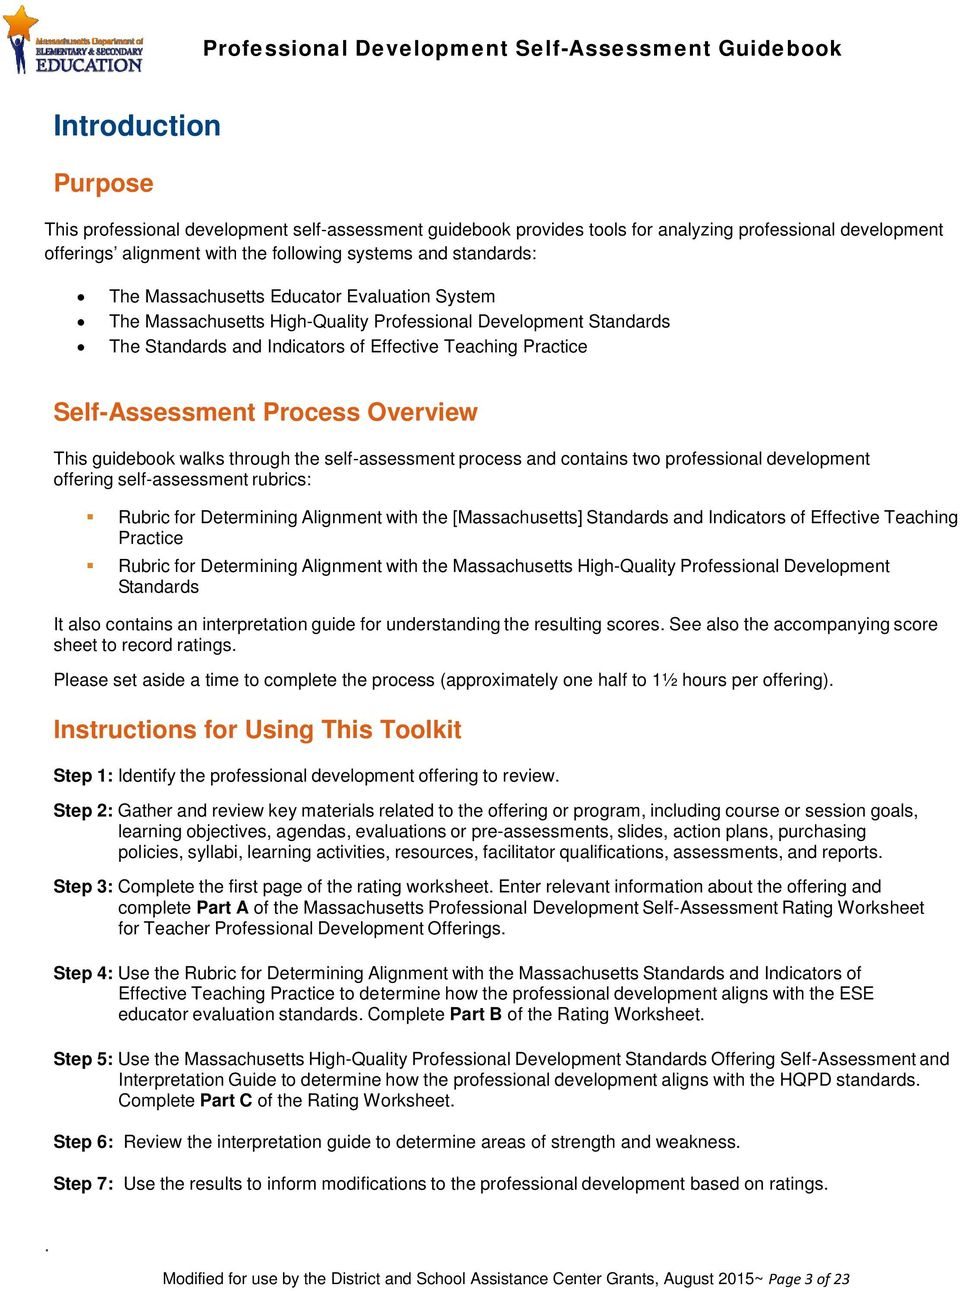 self-assessment process and contains two offering self-assessment rubrics: Rubric for Determining Alignment with the [Massachusetts] Standards and Indicators of Effective Teaching Practice Rubric for